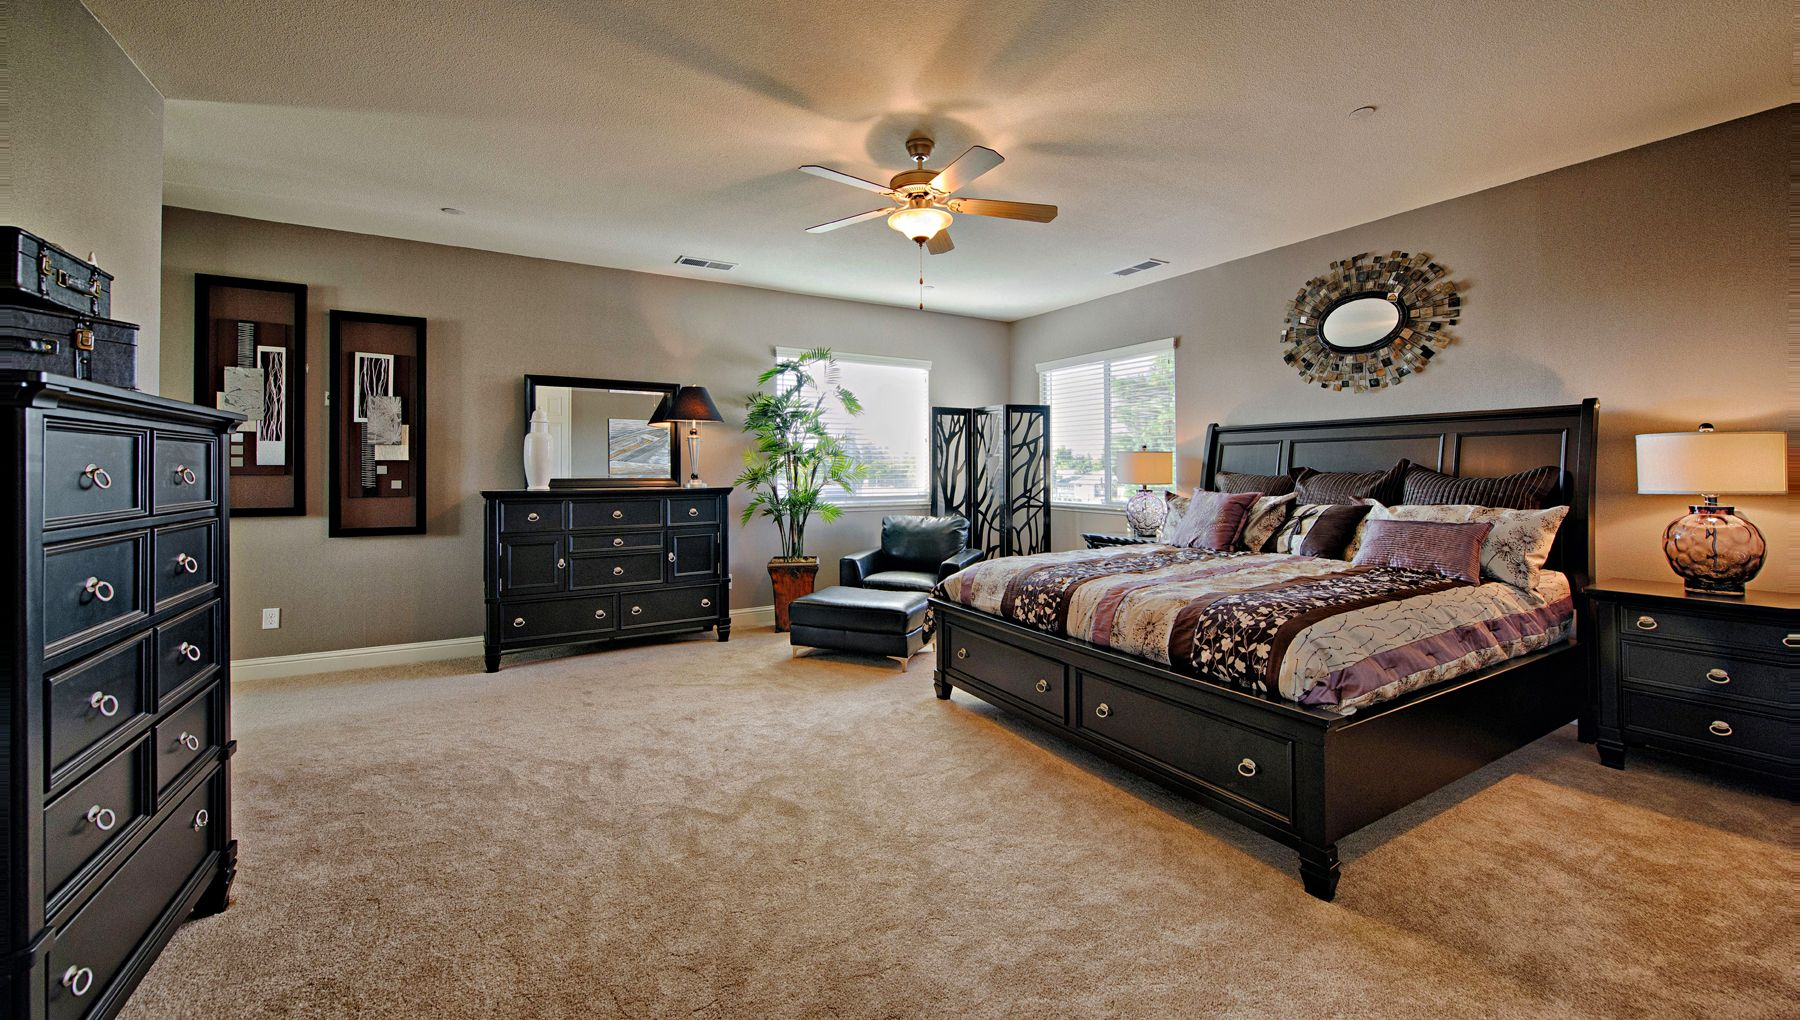 Dream master bedrooms dream master bedroom cool for Dream bedroom designs